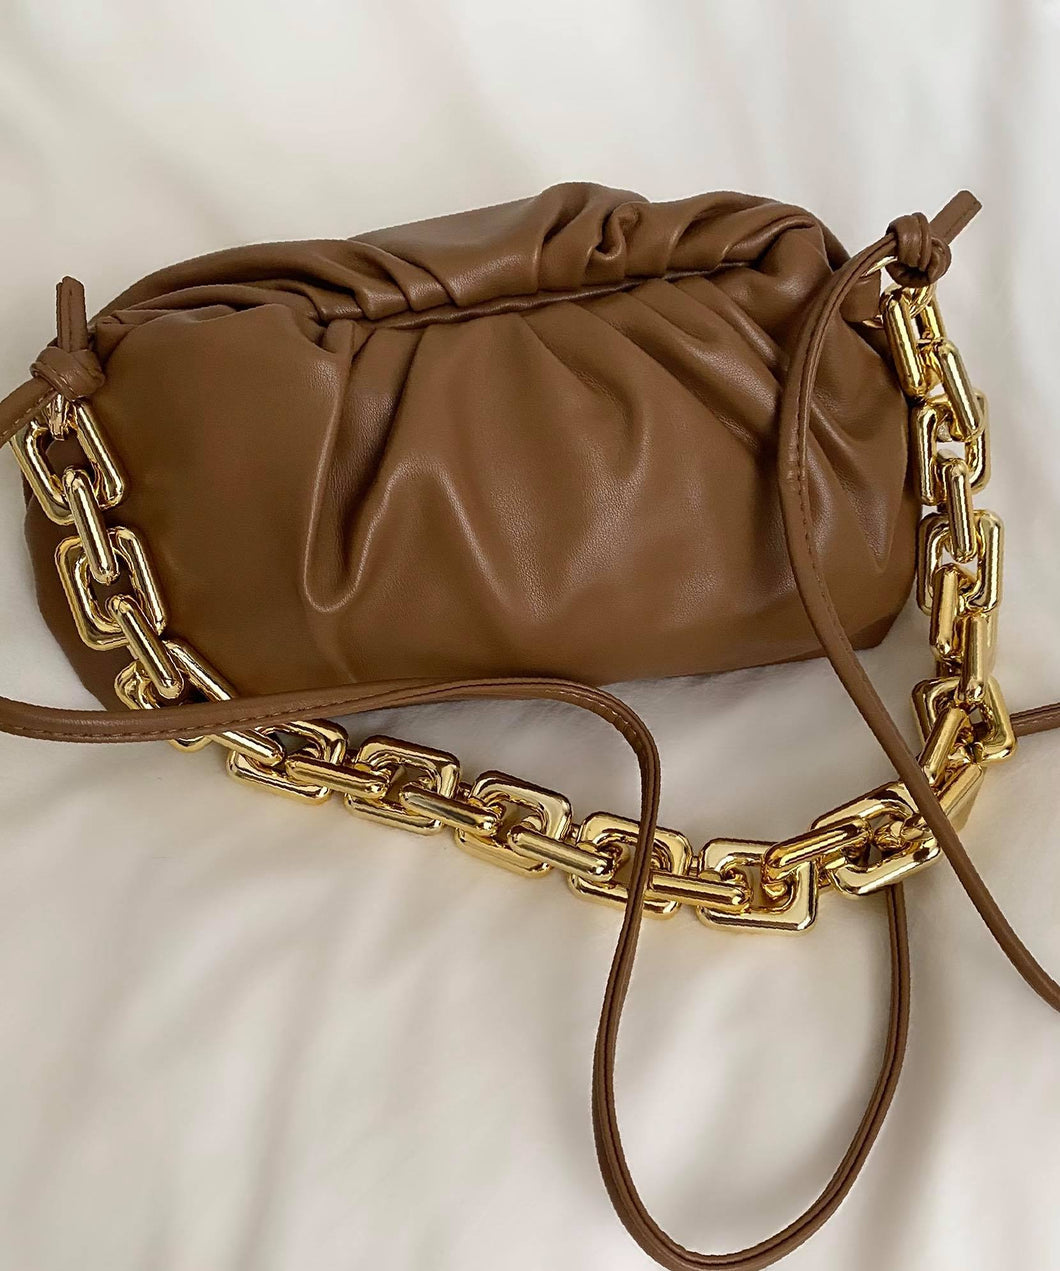 Chunky Gold Chain Pouch Clutch Bag | Chocolate